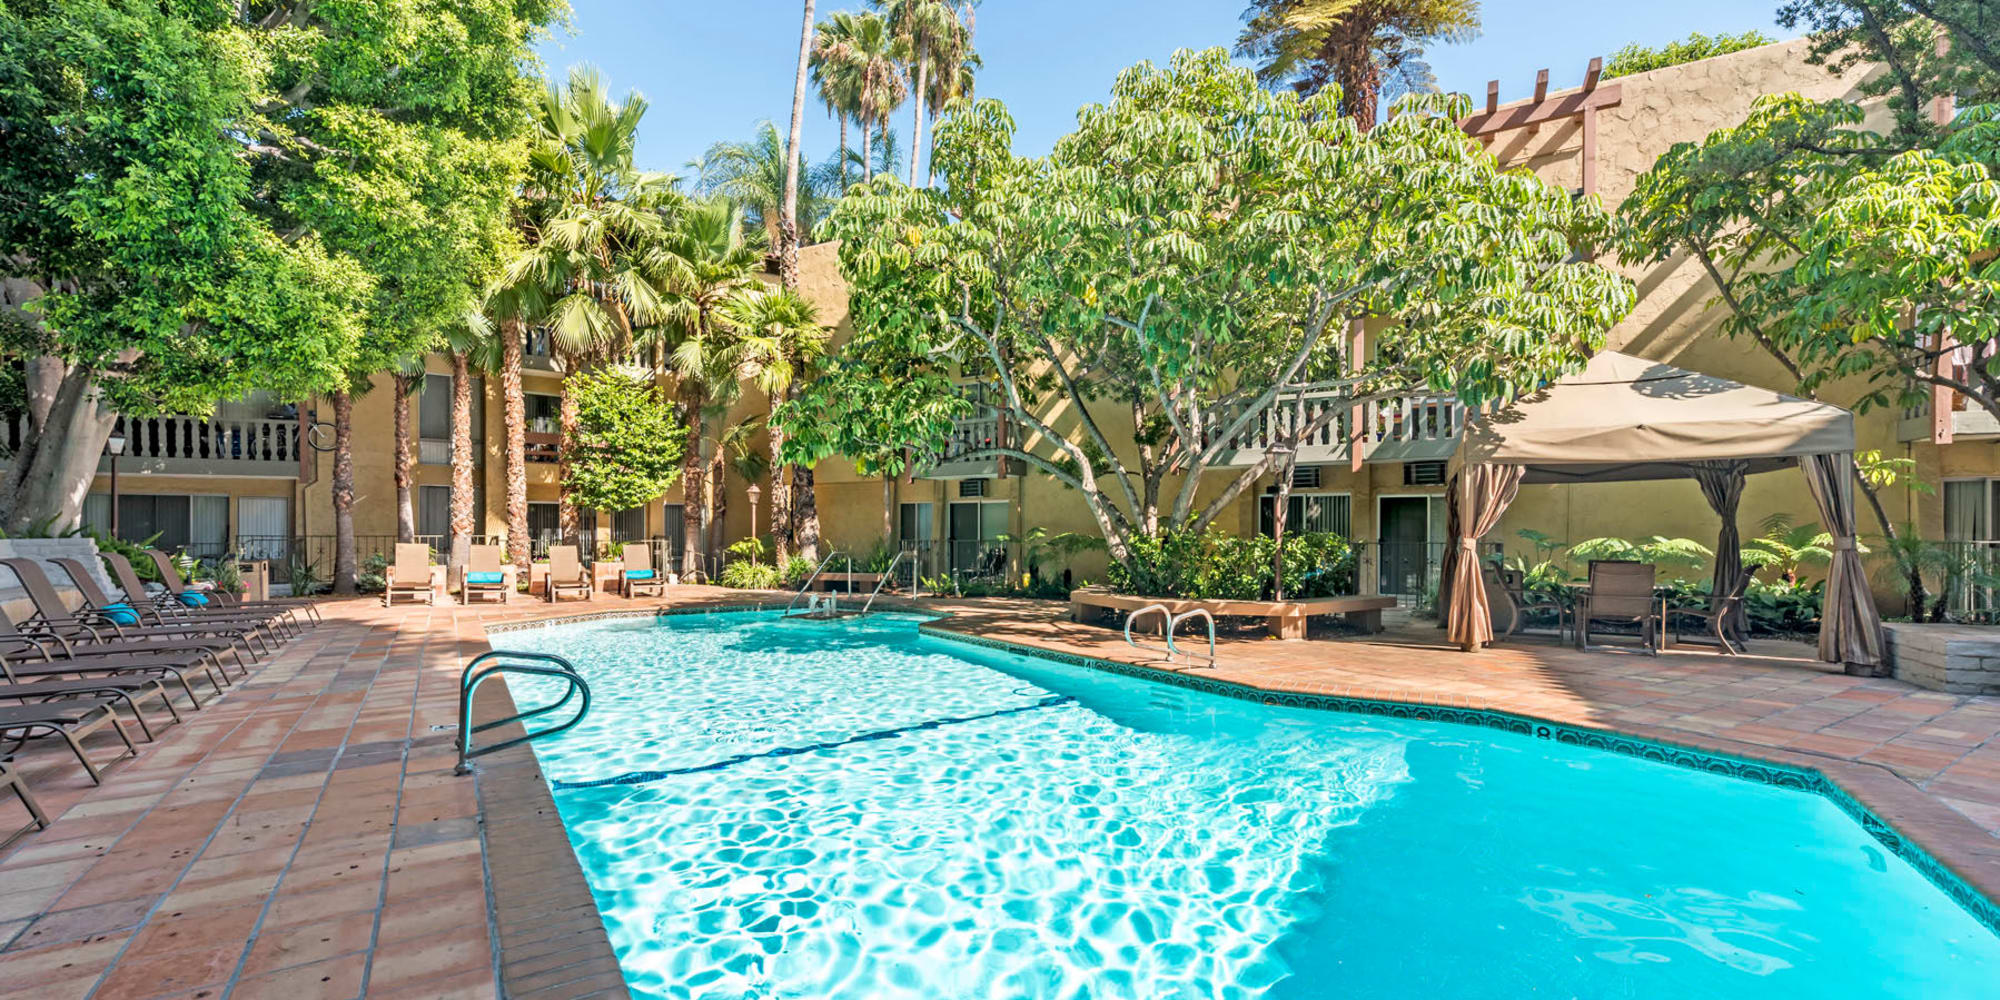 Lounge chairs and lush landscaping around the swimming pool at Mediterranean Village in West Hollywood, California